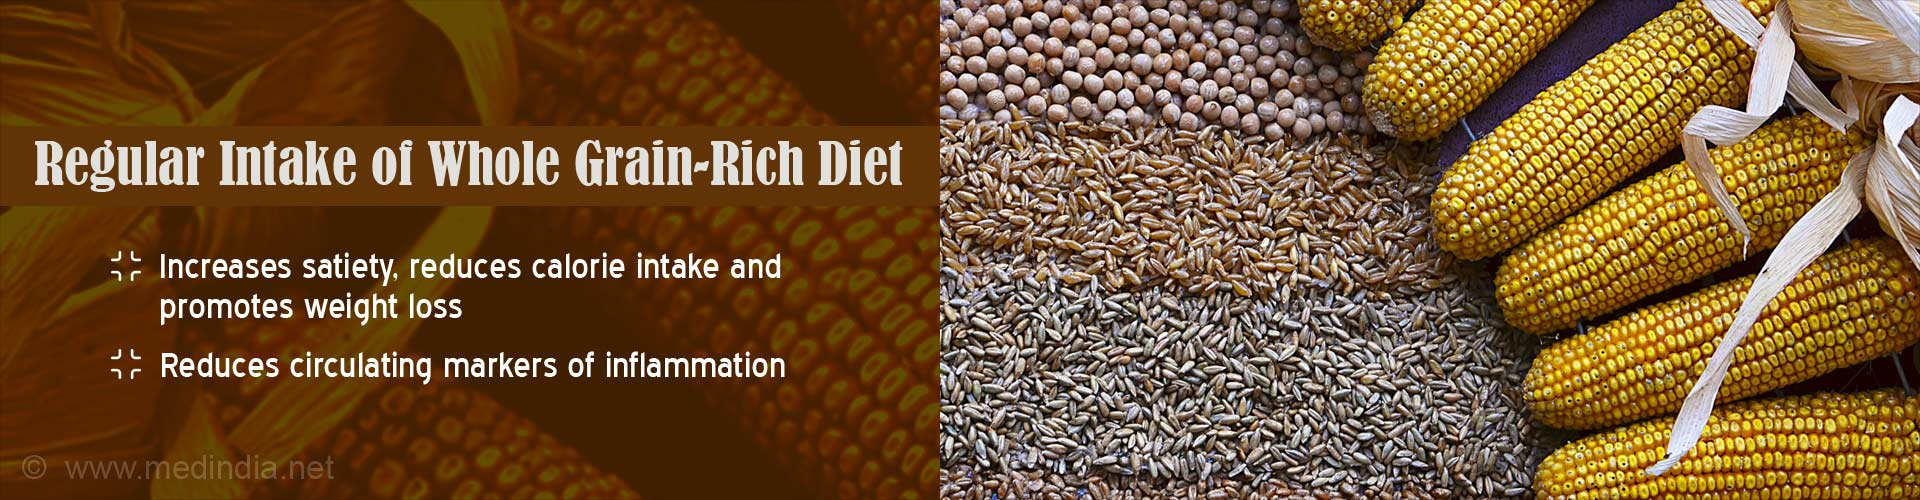 Whole Grains Reduce Inflammation, Help Lose Weight